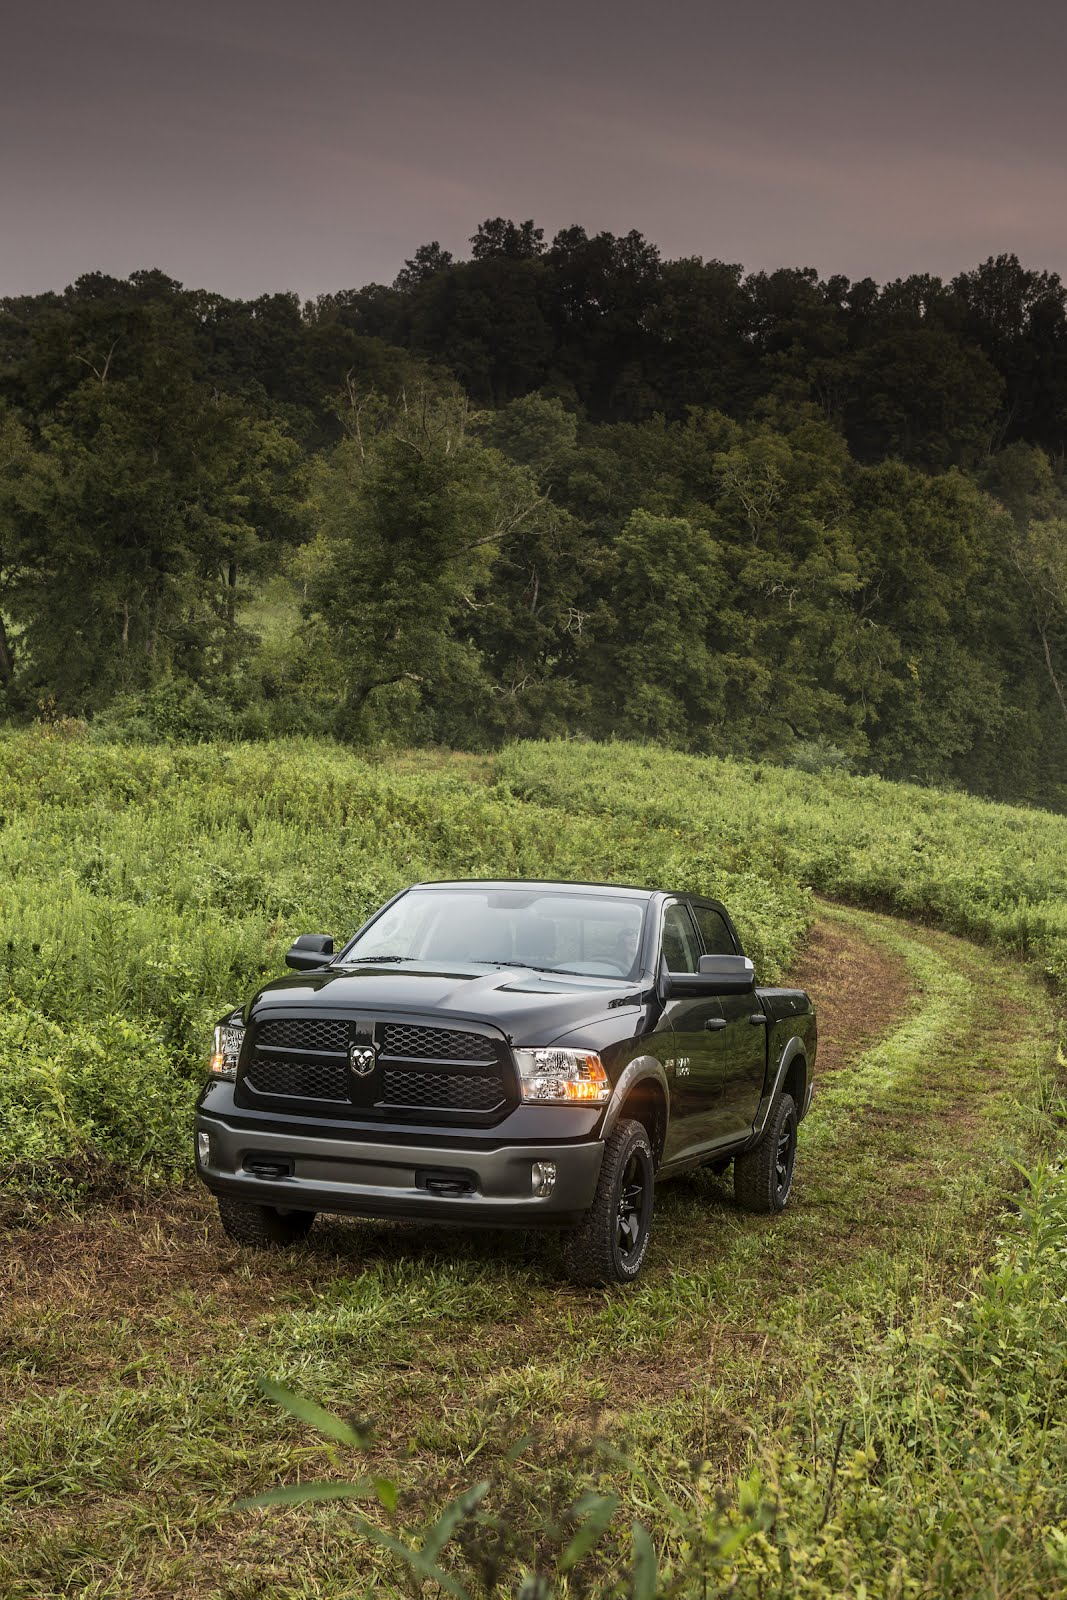 Dodge Ram 1500 Outdoorsman 2013 Wallpaper 1067x1600 Download Hd Wallpaper Wallpapertip